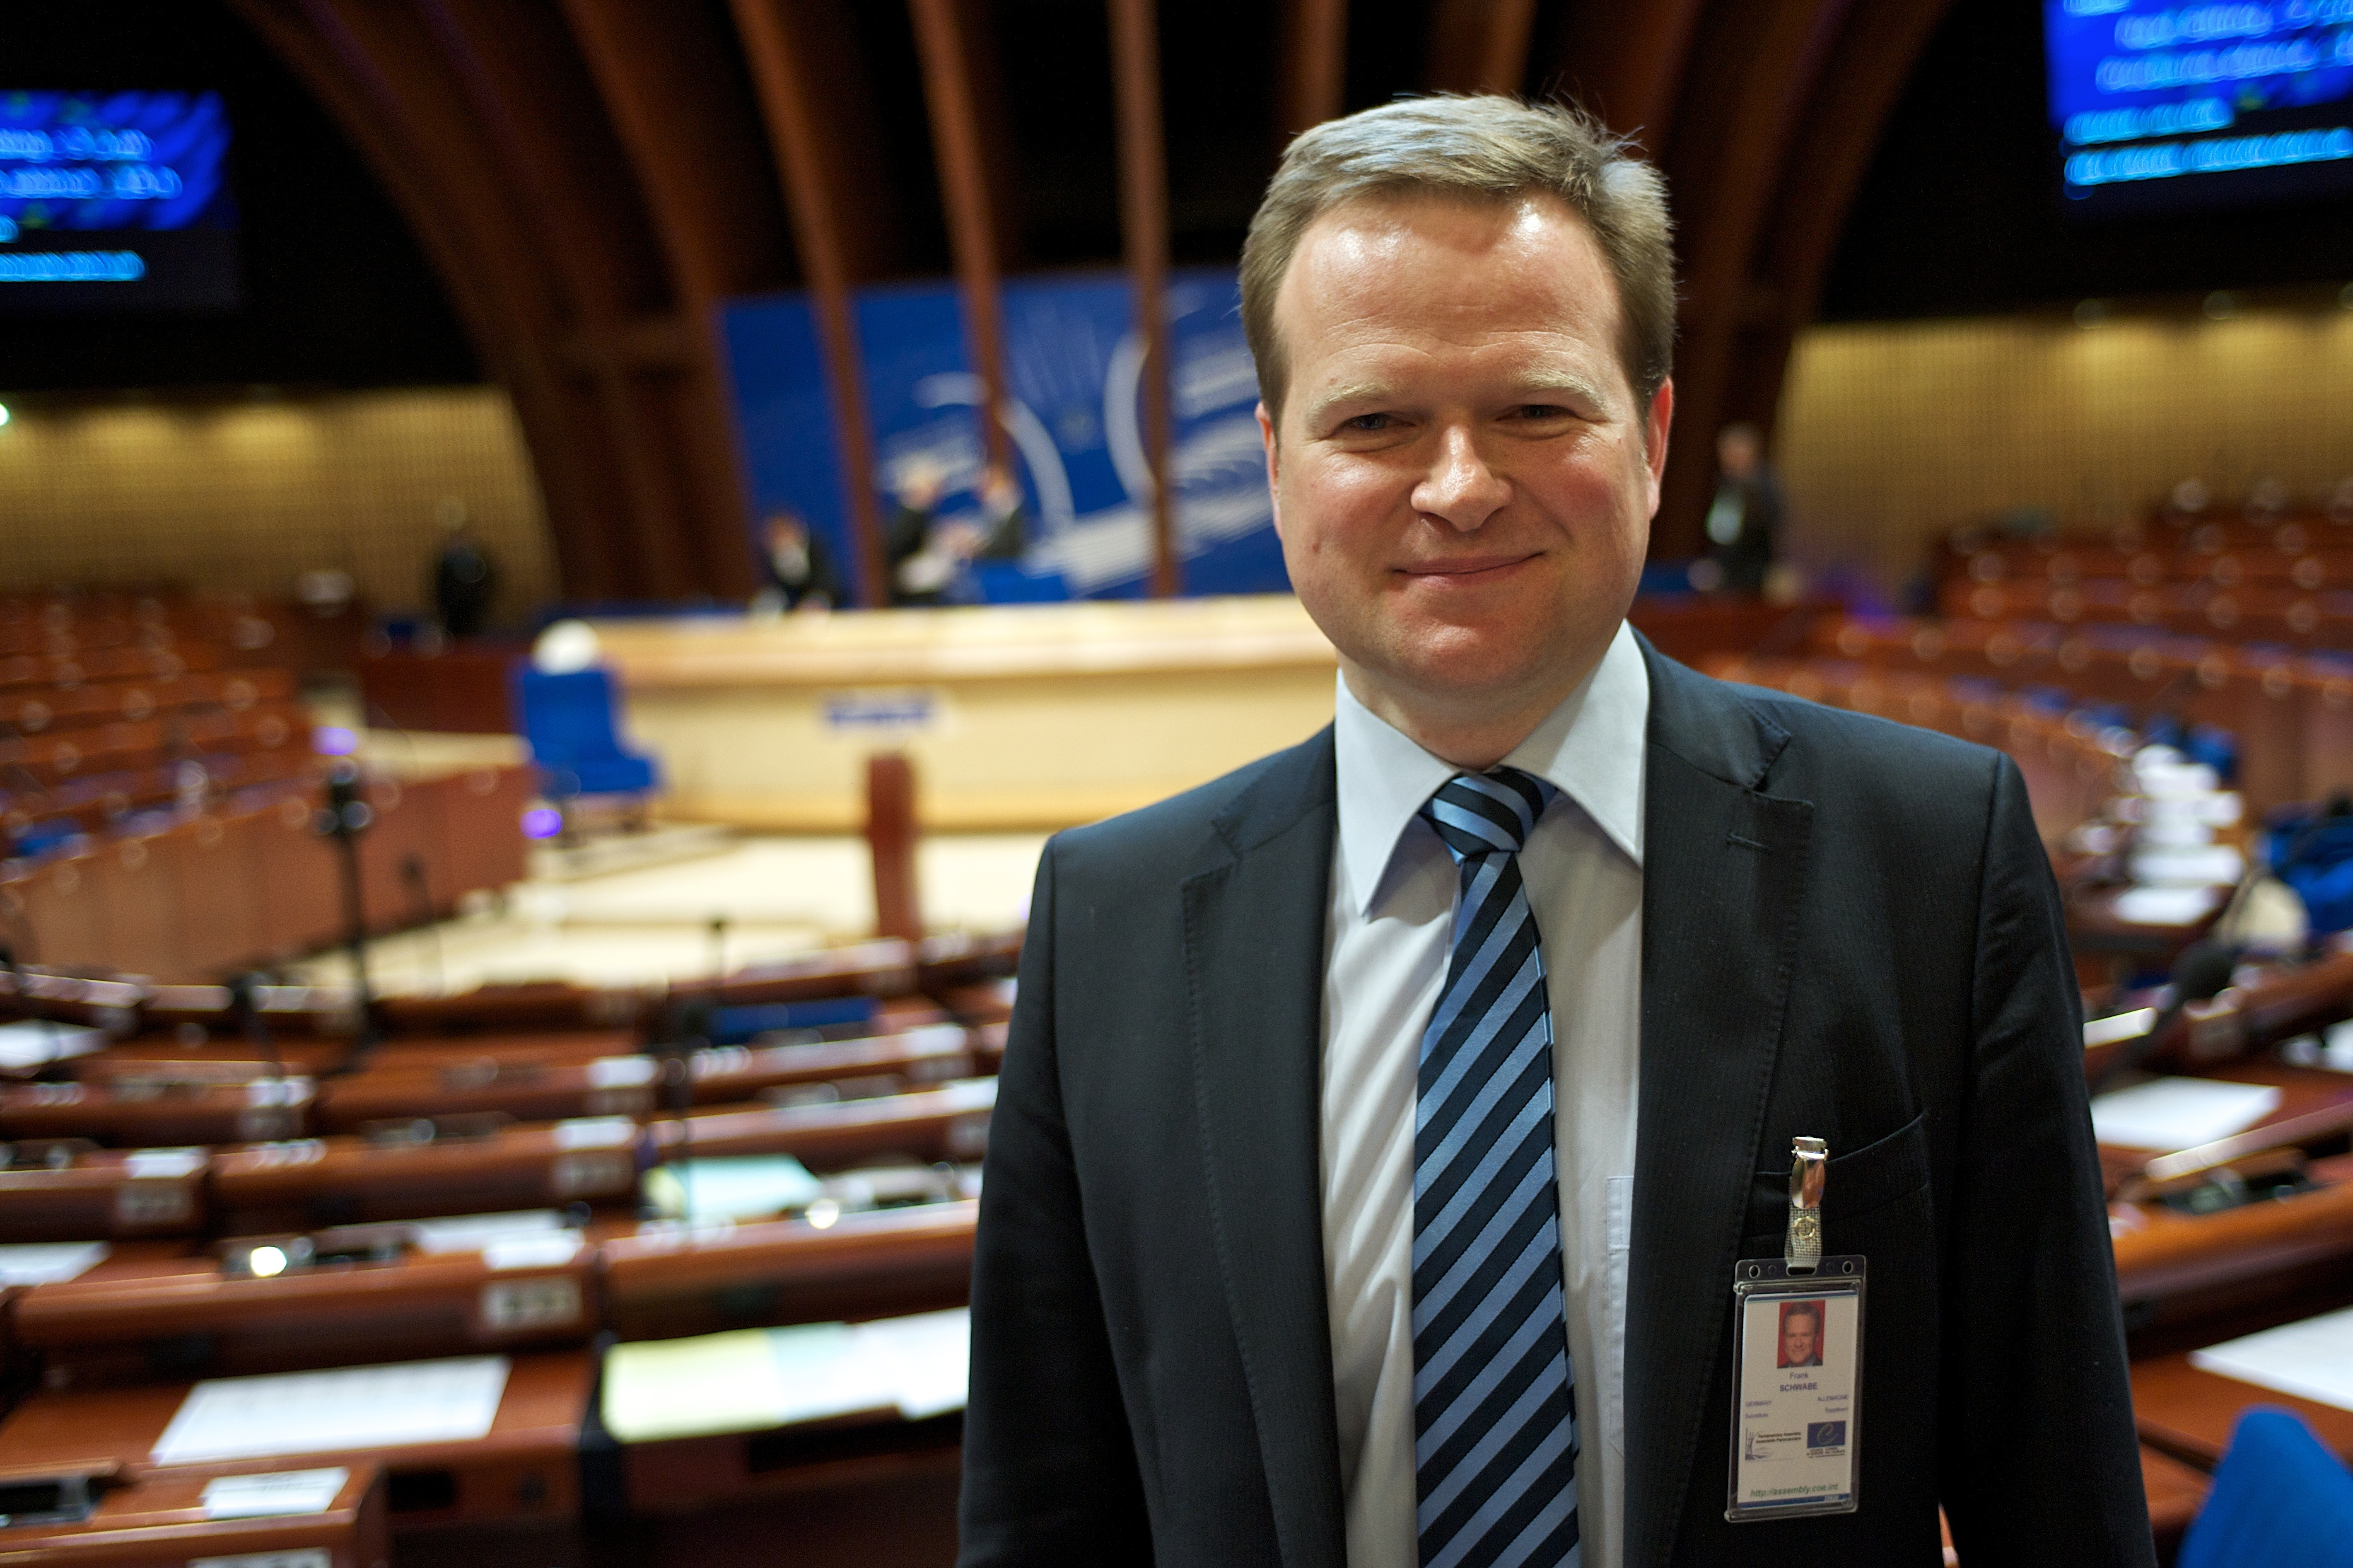 Statement following Ministerial Session of the Council of Europe in Helsinki